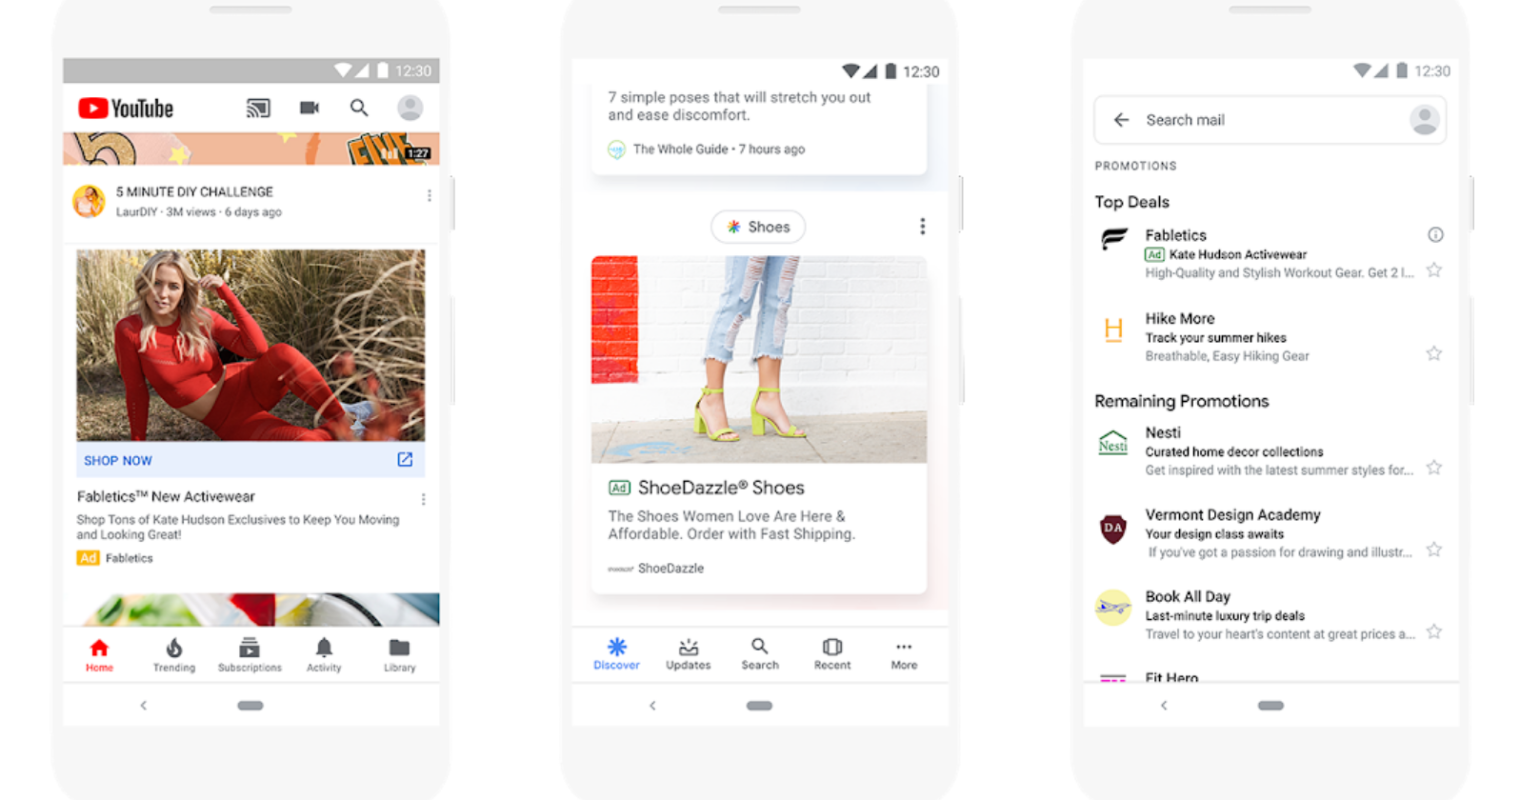 Google Confirms it Will Show Ads on its Mobile Home Page